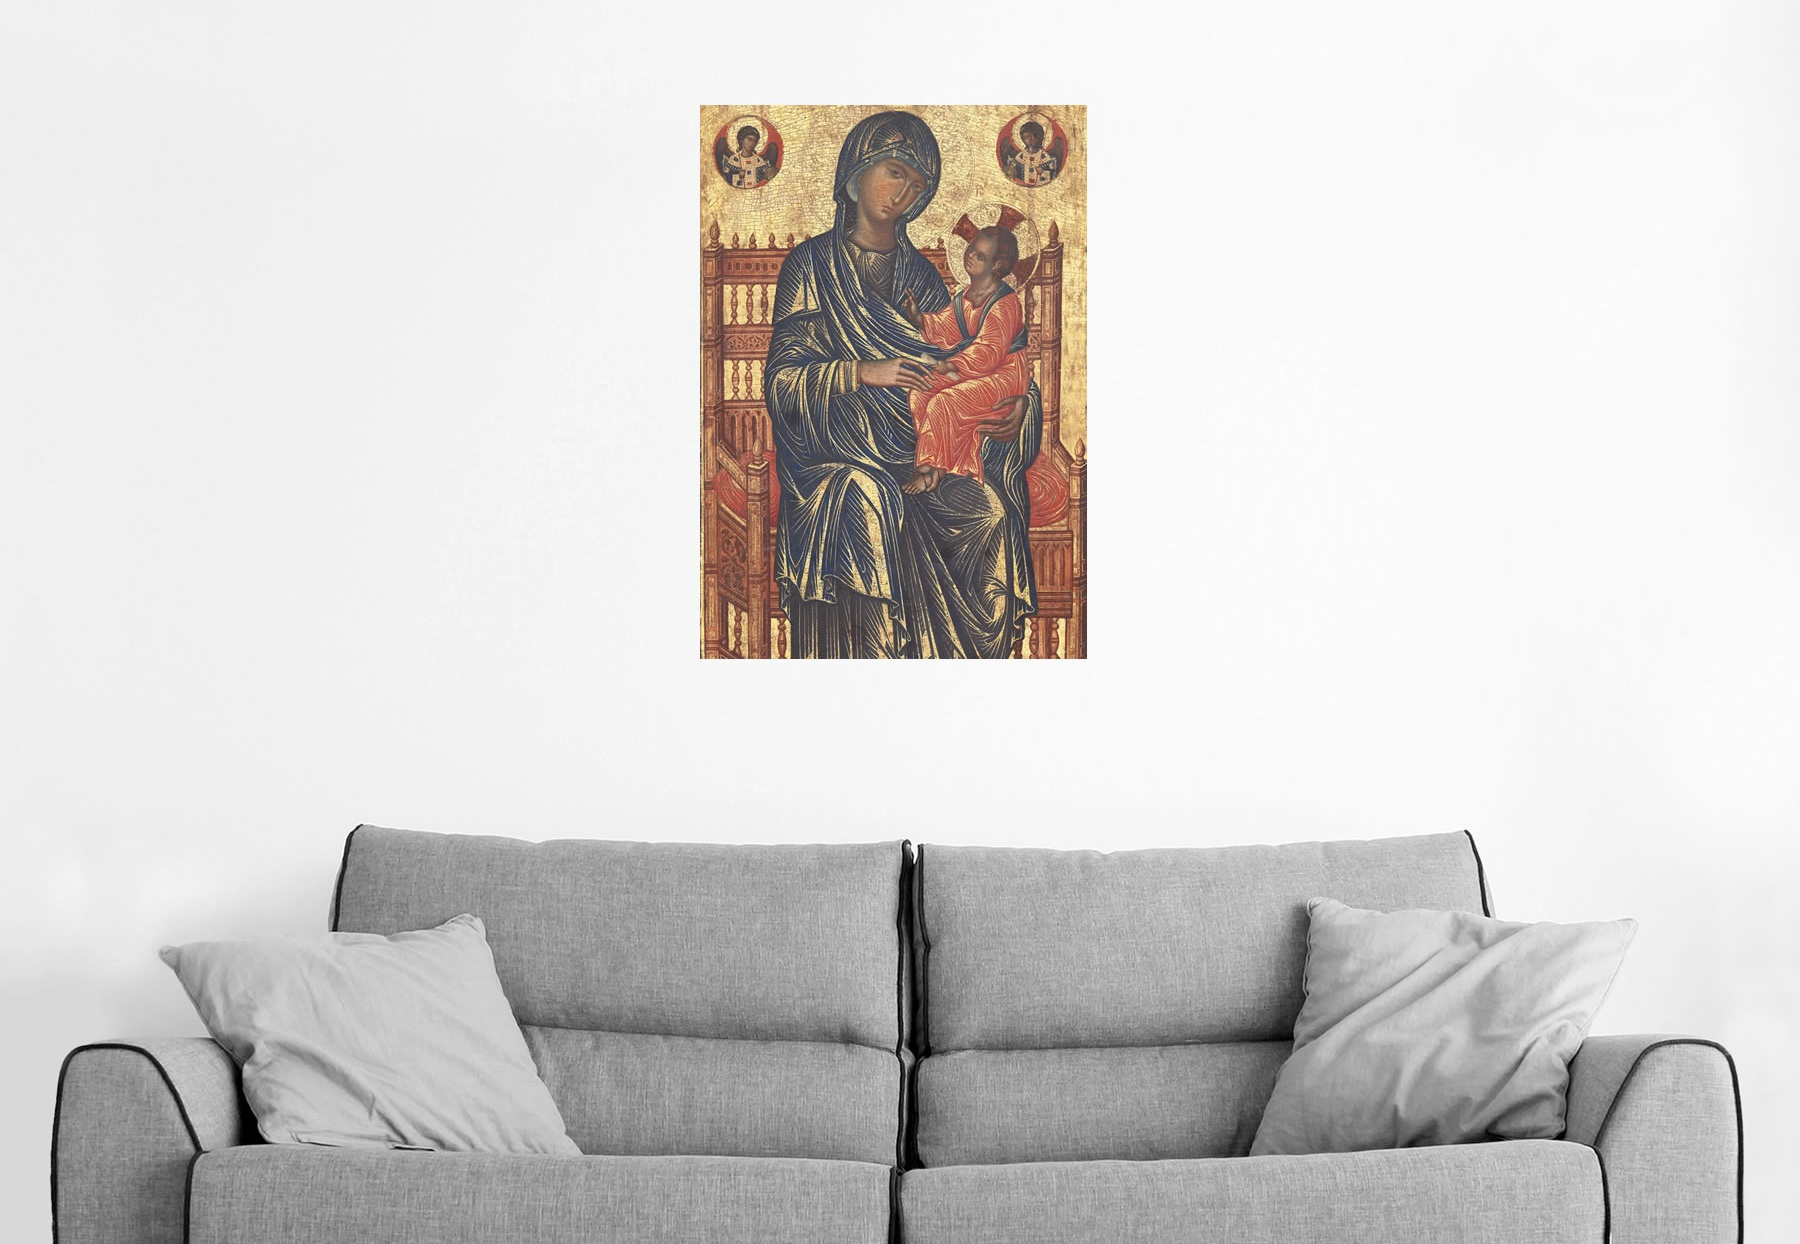 Byzantine_Enthroned+Madonna+and+Child_16x24-poster.jpg